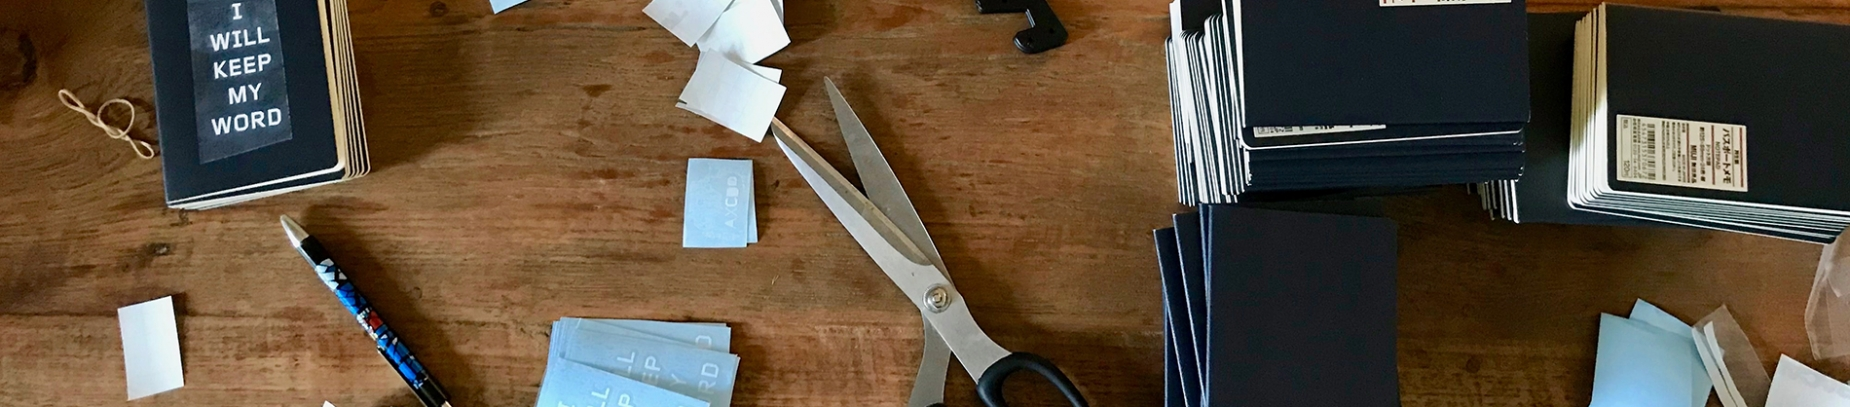 A desk covered in notebooks, scissors and cut up paper